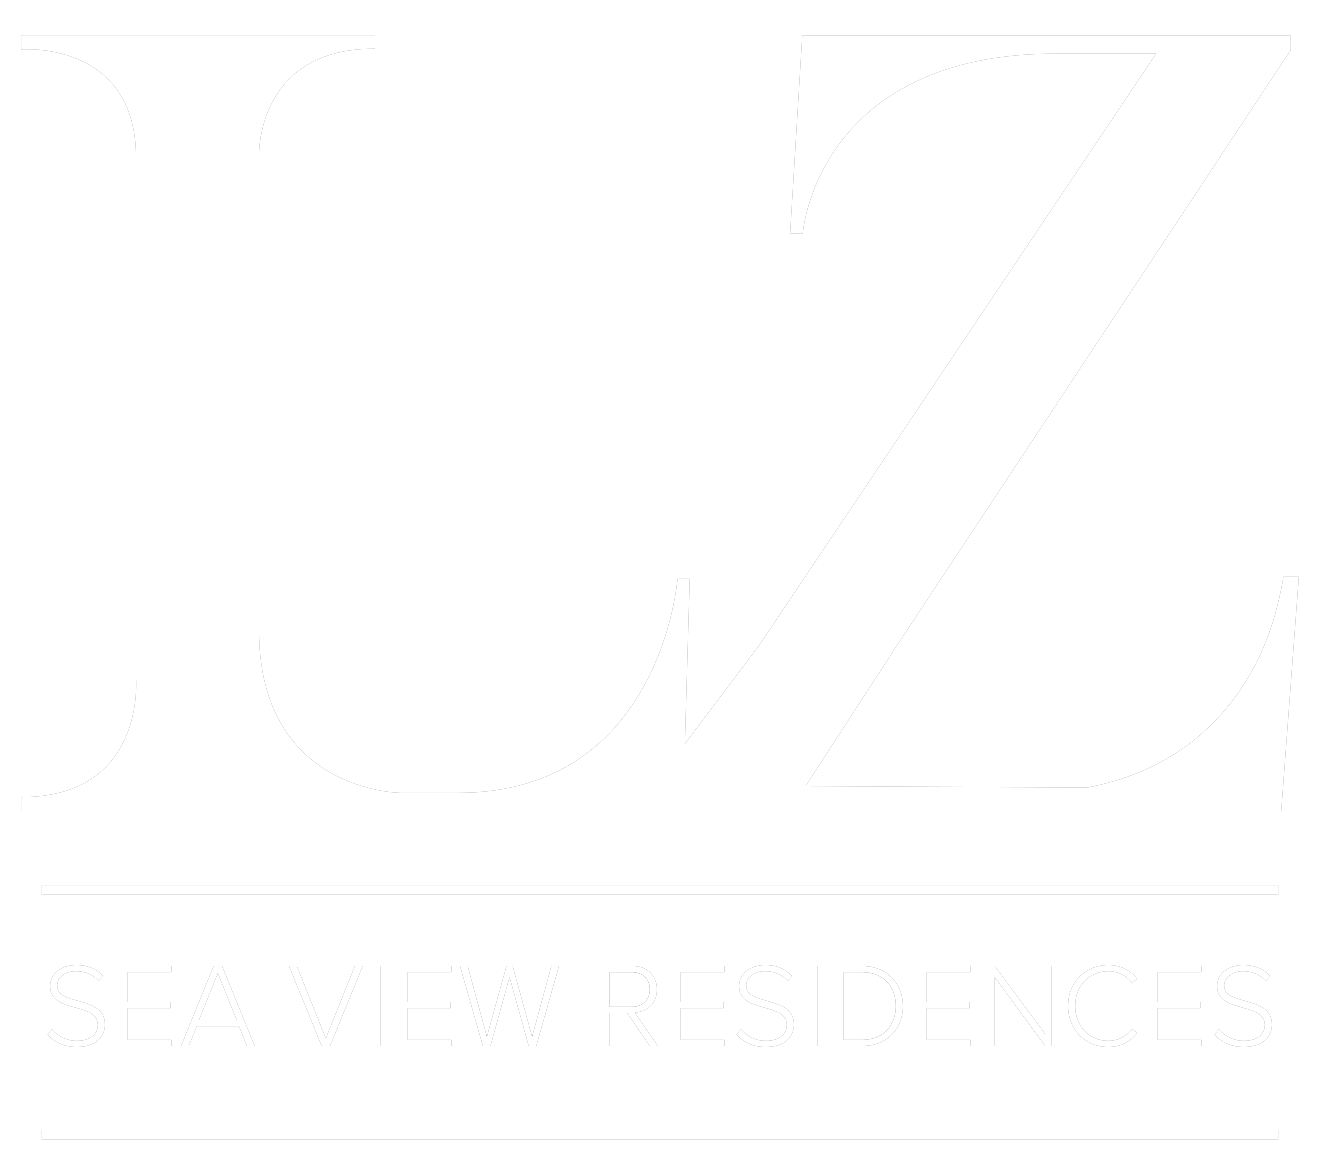 LZ Sea View Residences